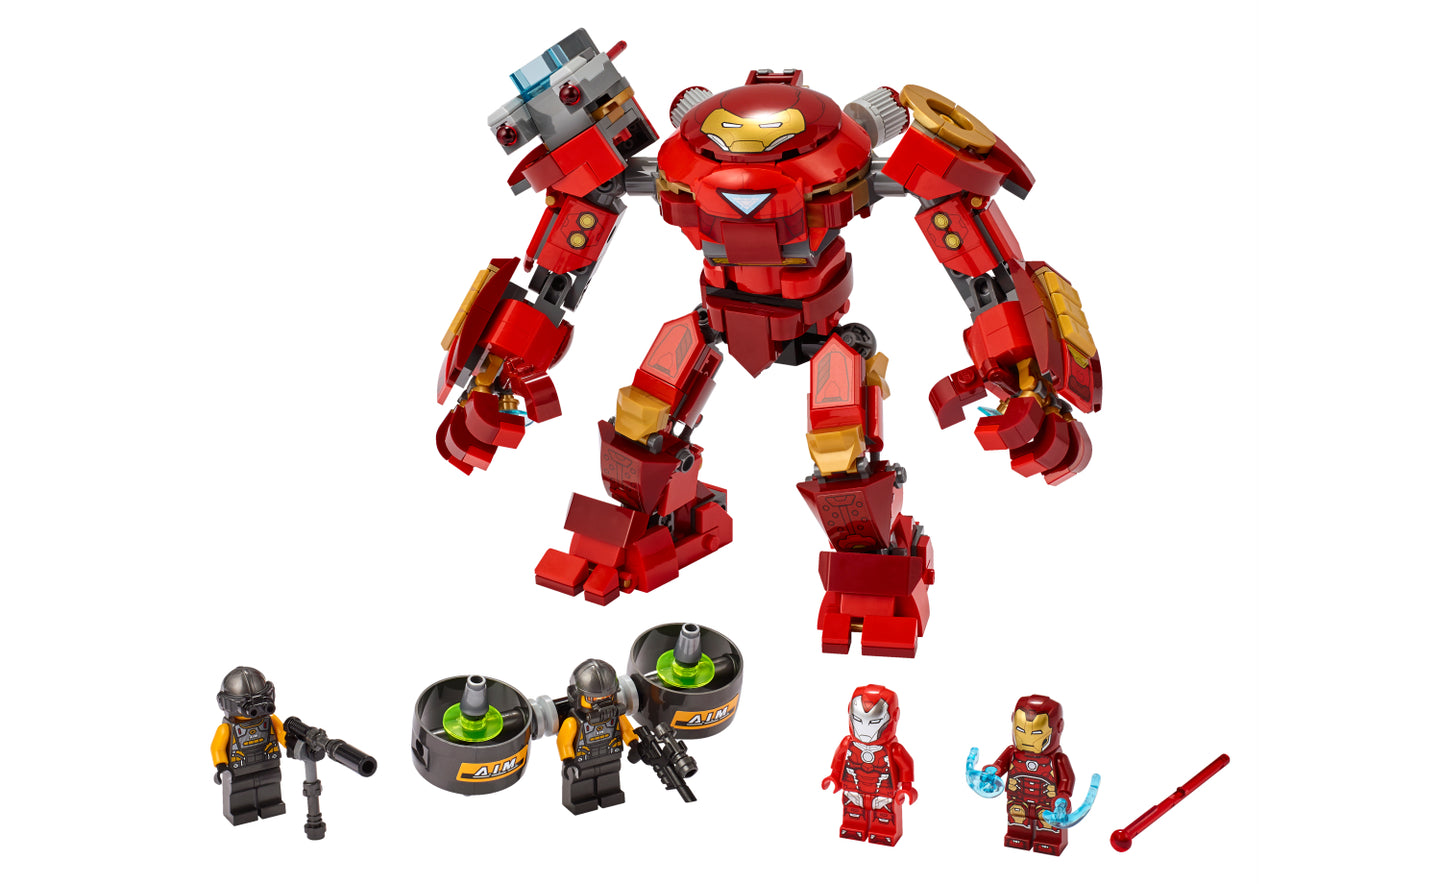 76164 | LEGO® Marvel Avengers Iron Man Hulkbuster Versus A.I.M. Agent